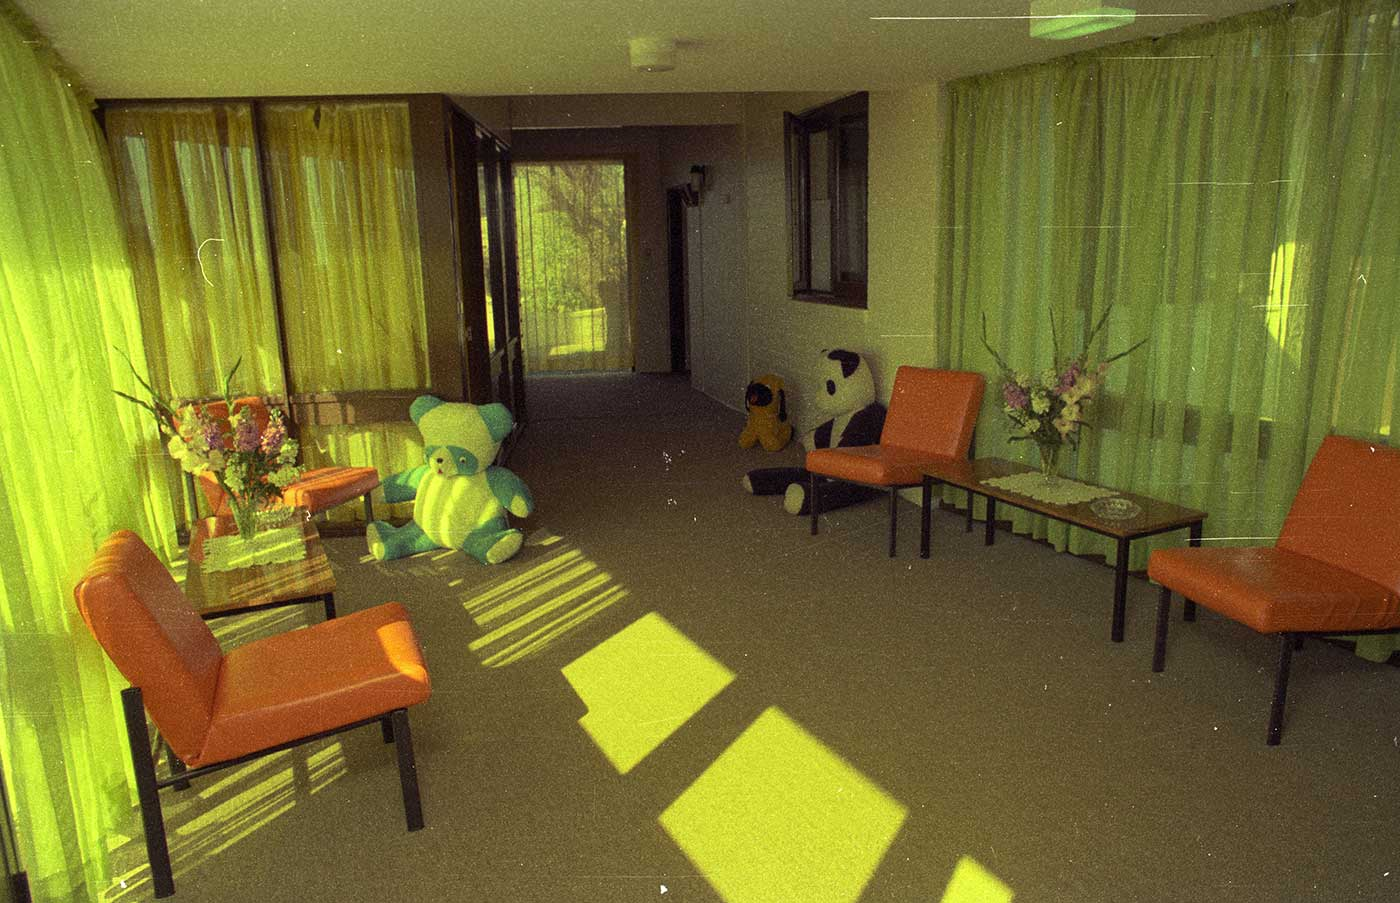 An empty playroom with chairs and large stuffed animals. - click to view larger image